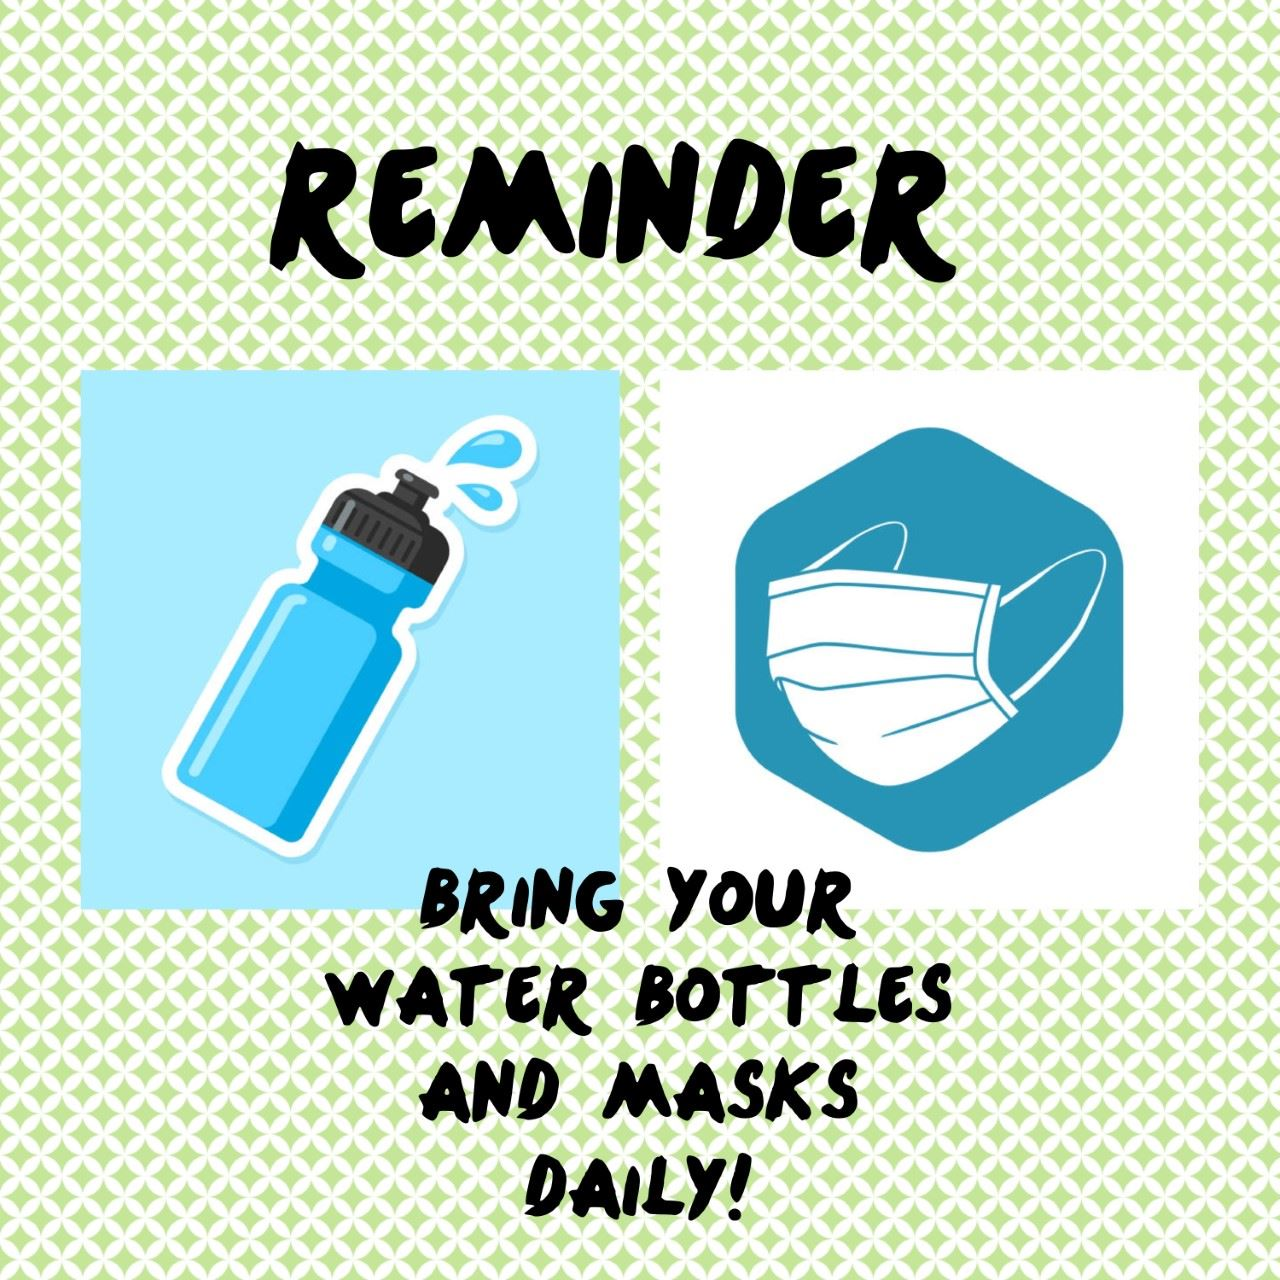 Reminder about Water Bottles and Masks